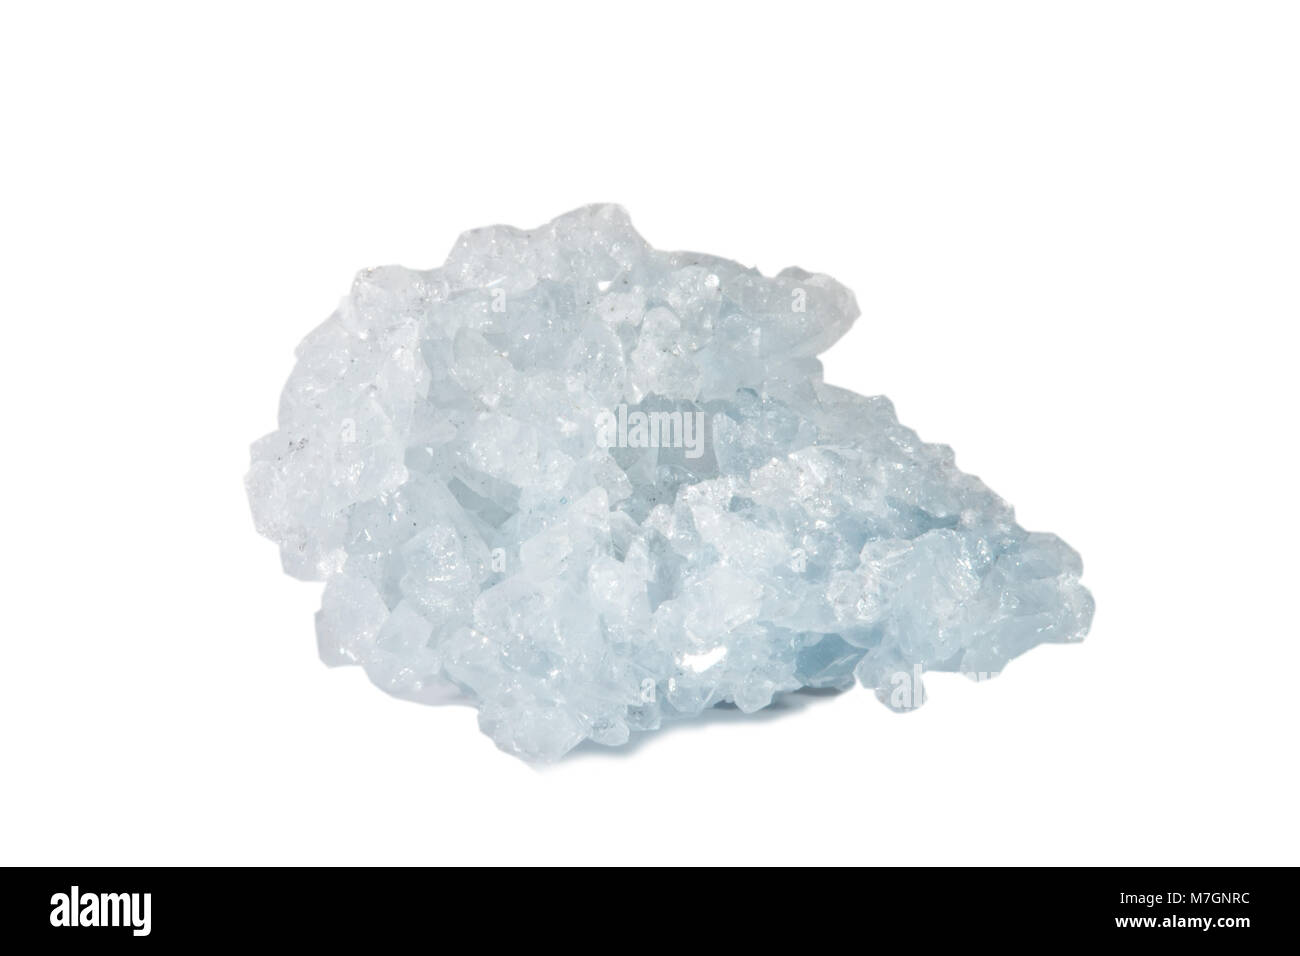 Macro shooting of natural gemstone. The raw mineral is Celestine, Madagascar. Isolated object on a white background. - Stock Image